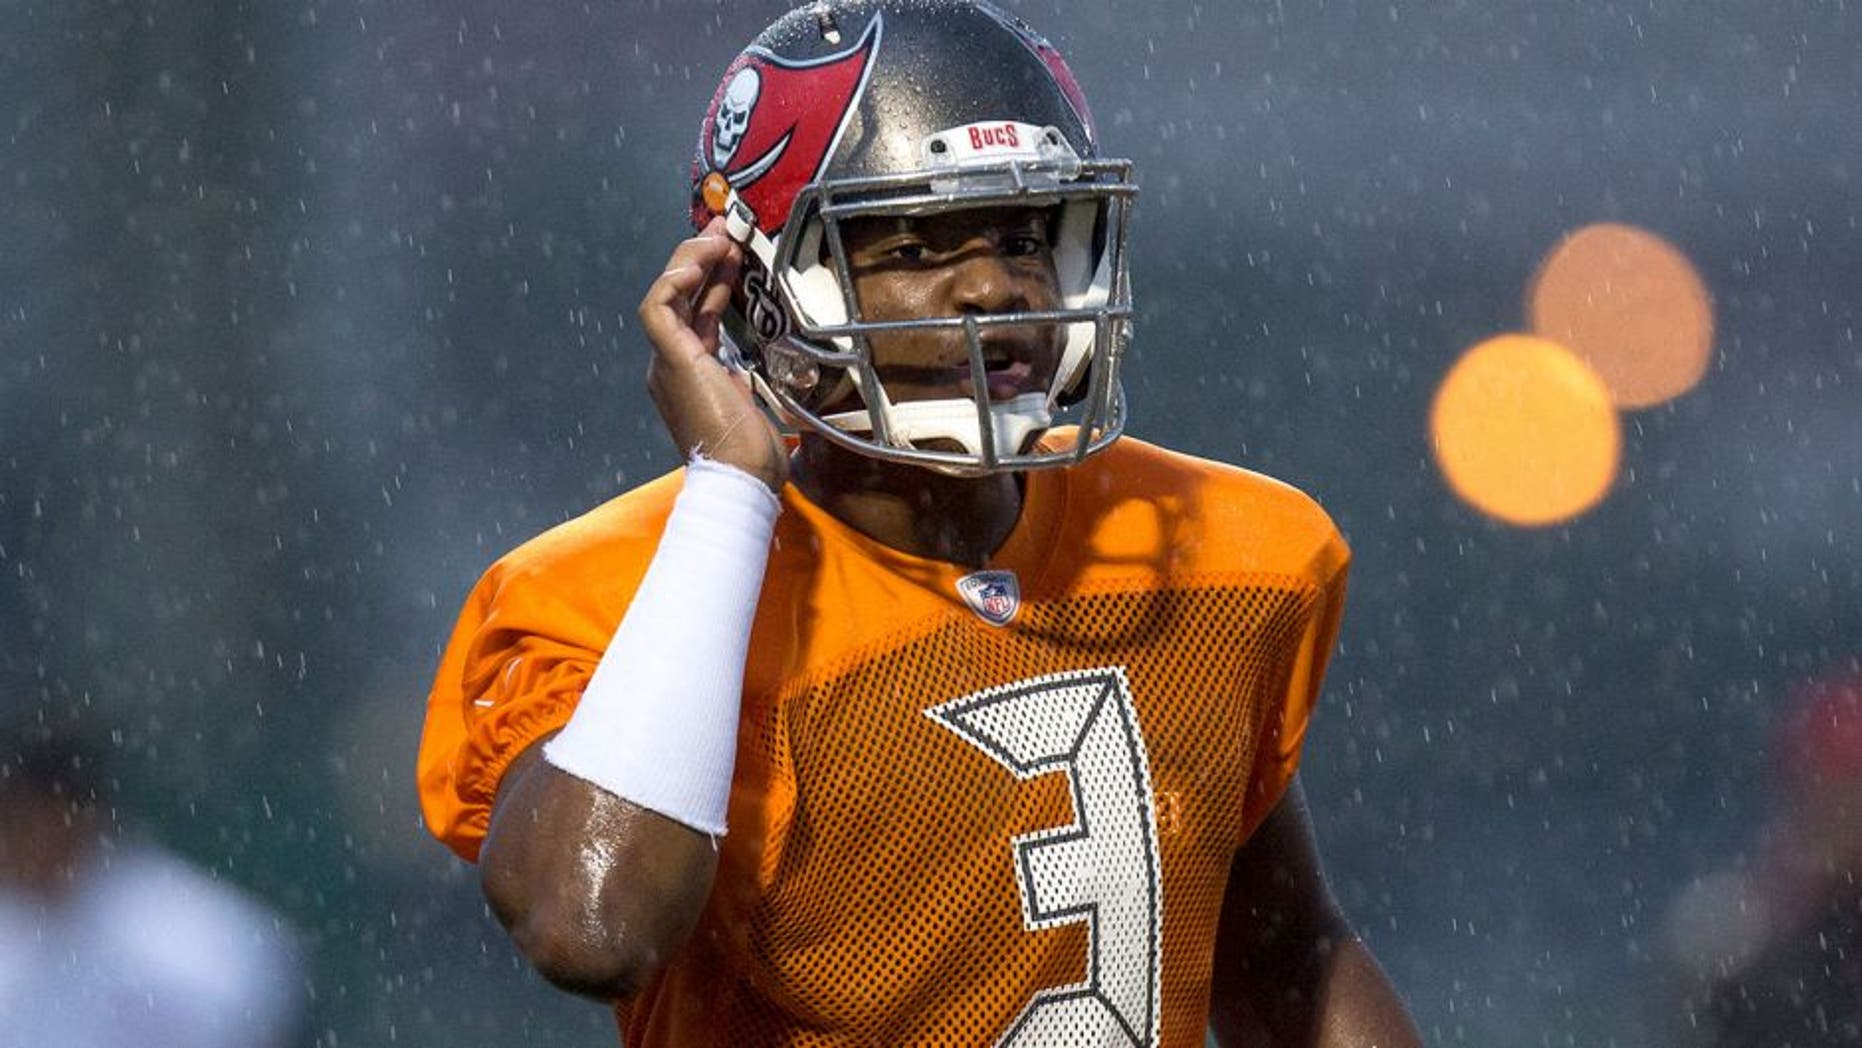 TAMPA, FL - AUGUST 1: Quarterback Jameis Winston #3 of the Tampa Bay Buccaneers works out during the first day of Training Camp at the University of South Florida on August 1, 2015 in Tampa, Florida. (Photo by Don Juan Moore/Getty Images)